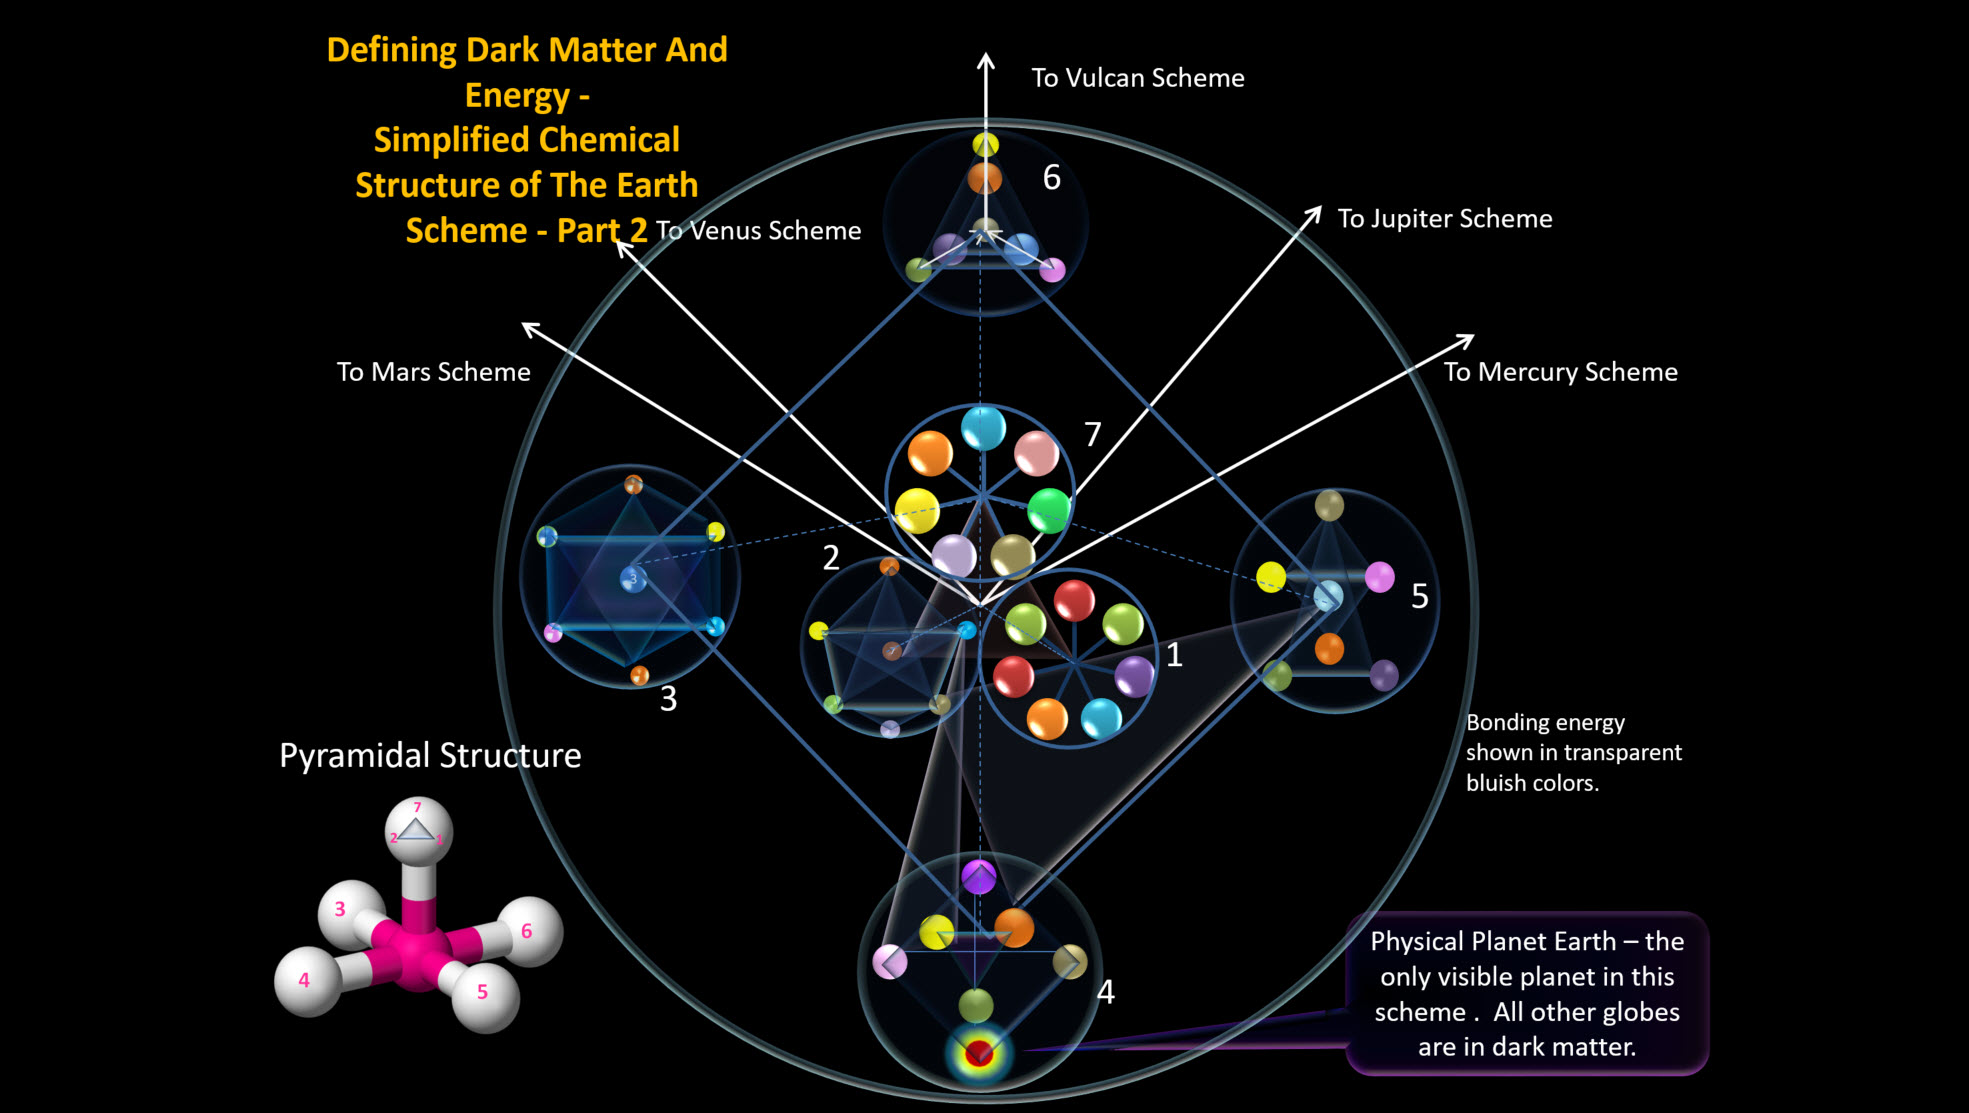 Defining Dark Matter and Energy - Simplified Chemical Structure of the Earth Scheme - Part 2